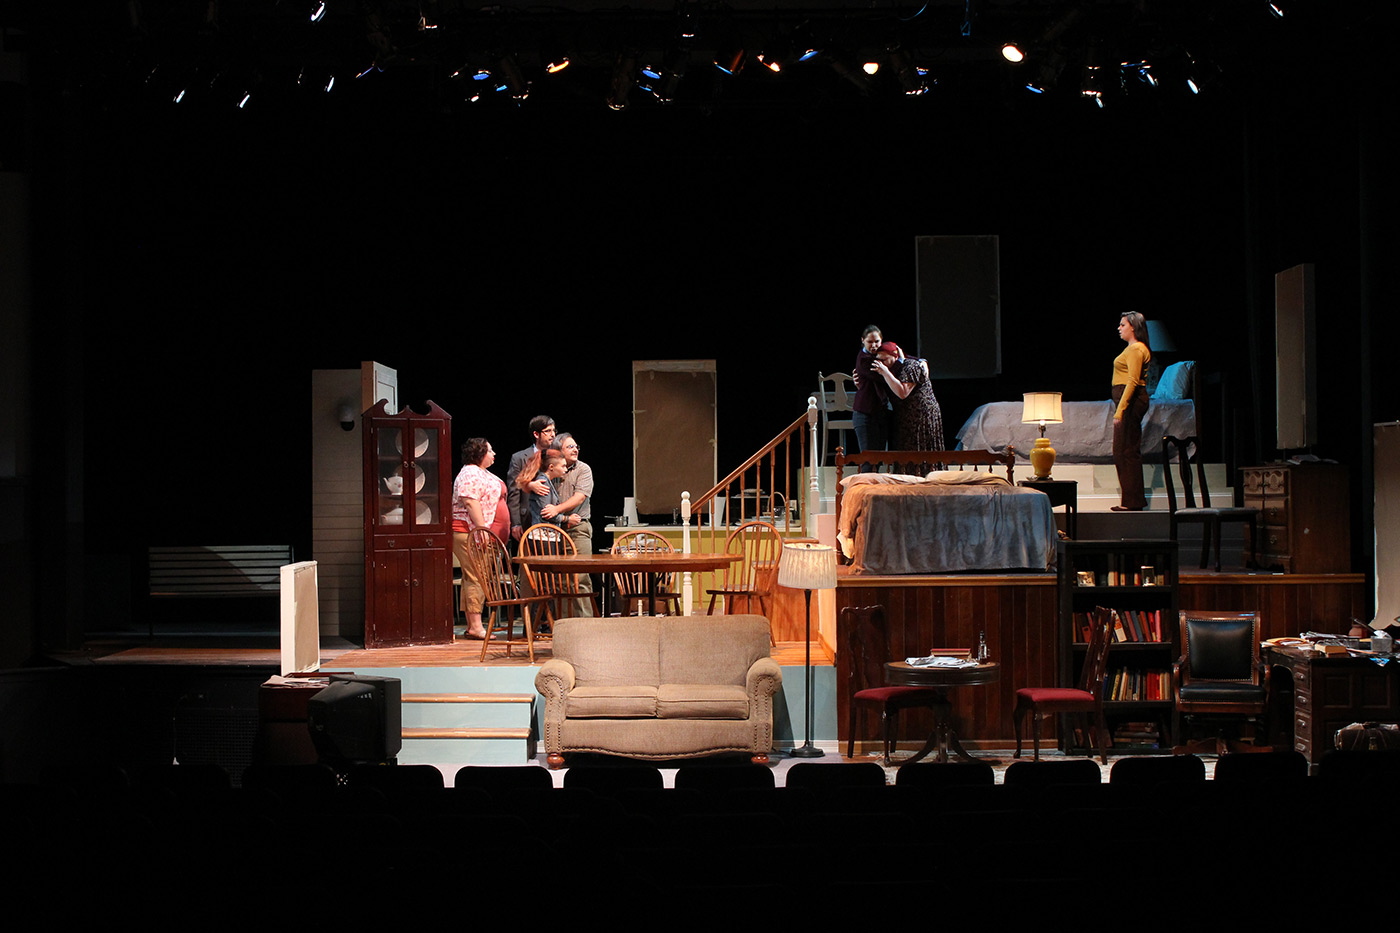 Students performing on stage during a UMass Lowell Theatre Arts production.